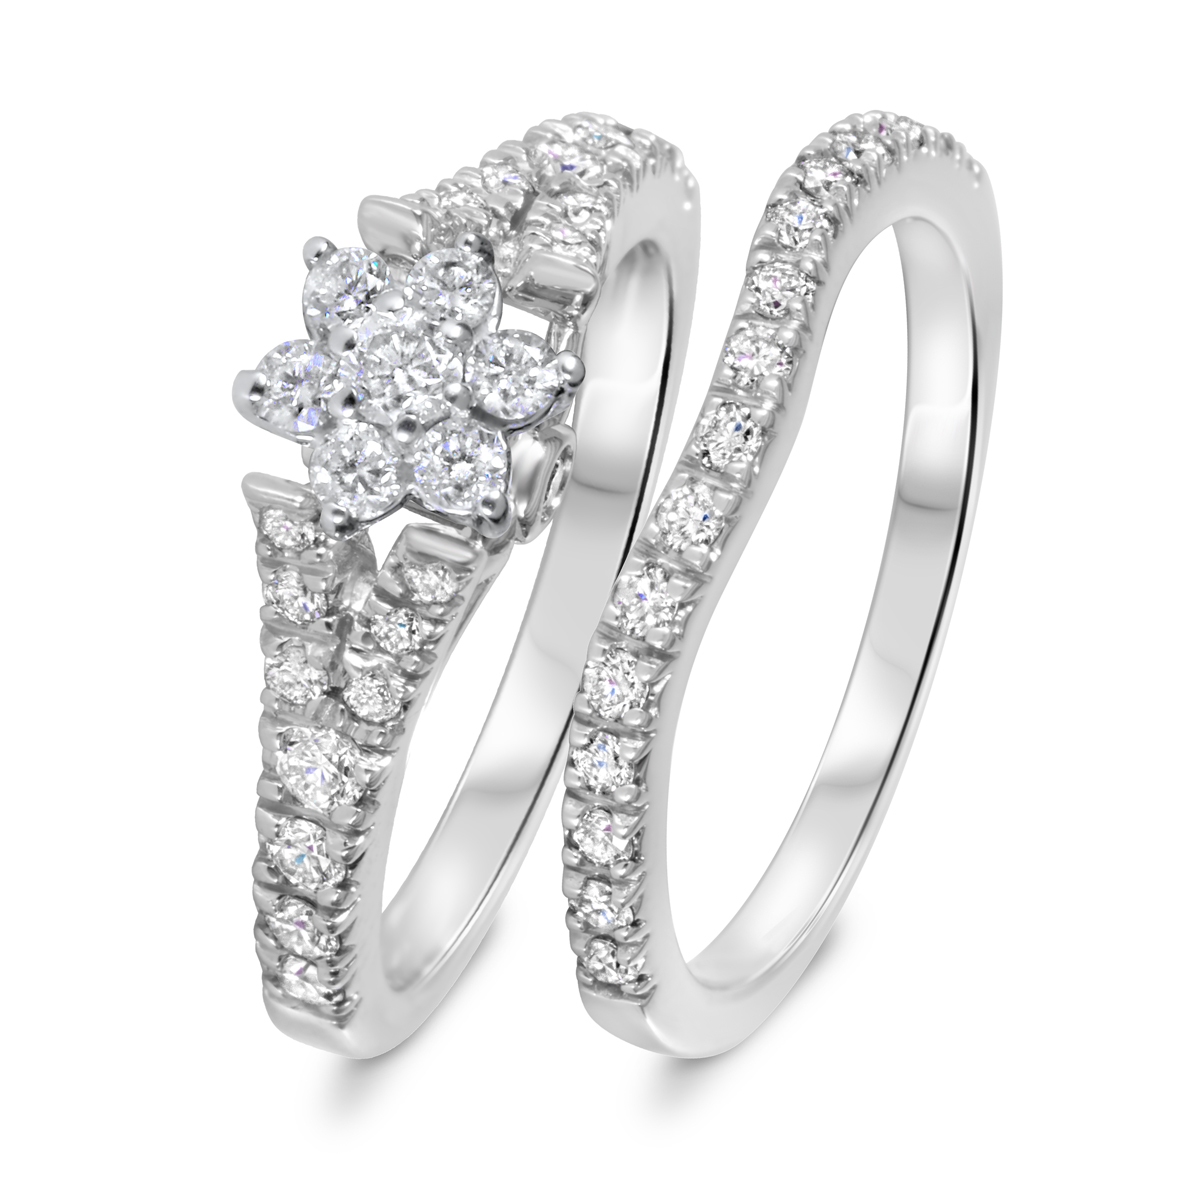 1 CT. T.W. Diamond Women's Bridal Wedding Ring Set 14K White Gold